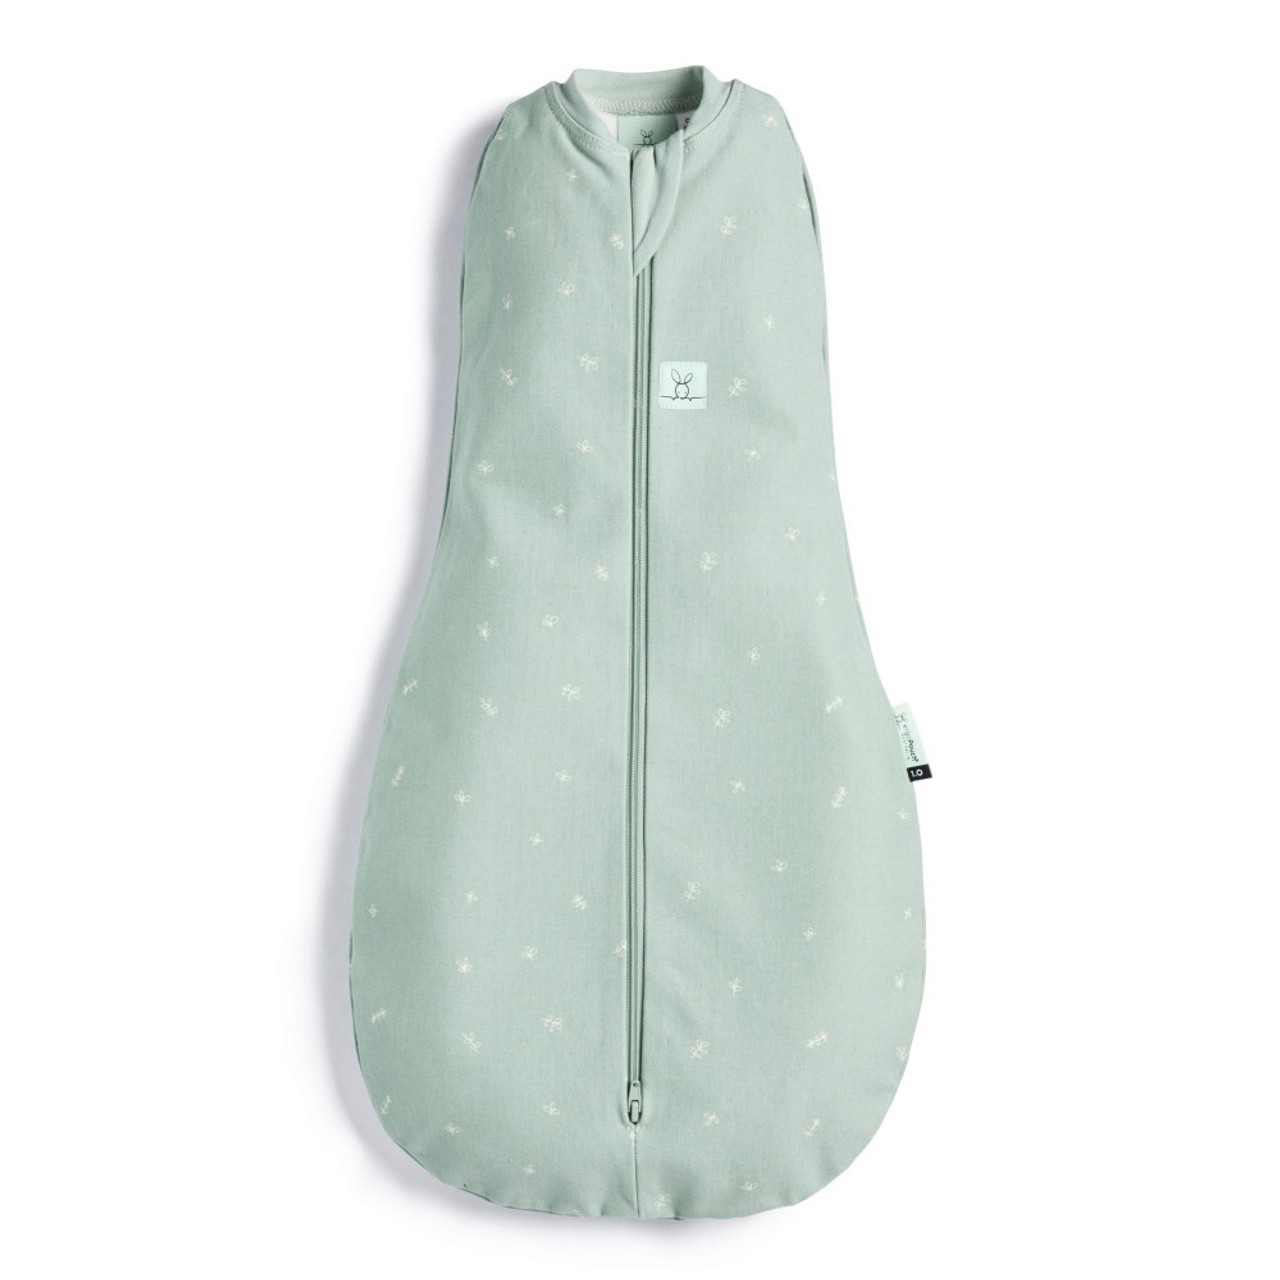 Ergopouch Cocoon Swaddle Bag 1.0 tog 0-3 Months SAGE at Baby Barn Discounts ergoPouch cocoon 1.0 tog is an escape-proof swaddle which converts to a sleeping bag.